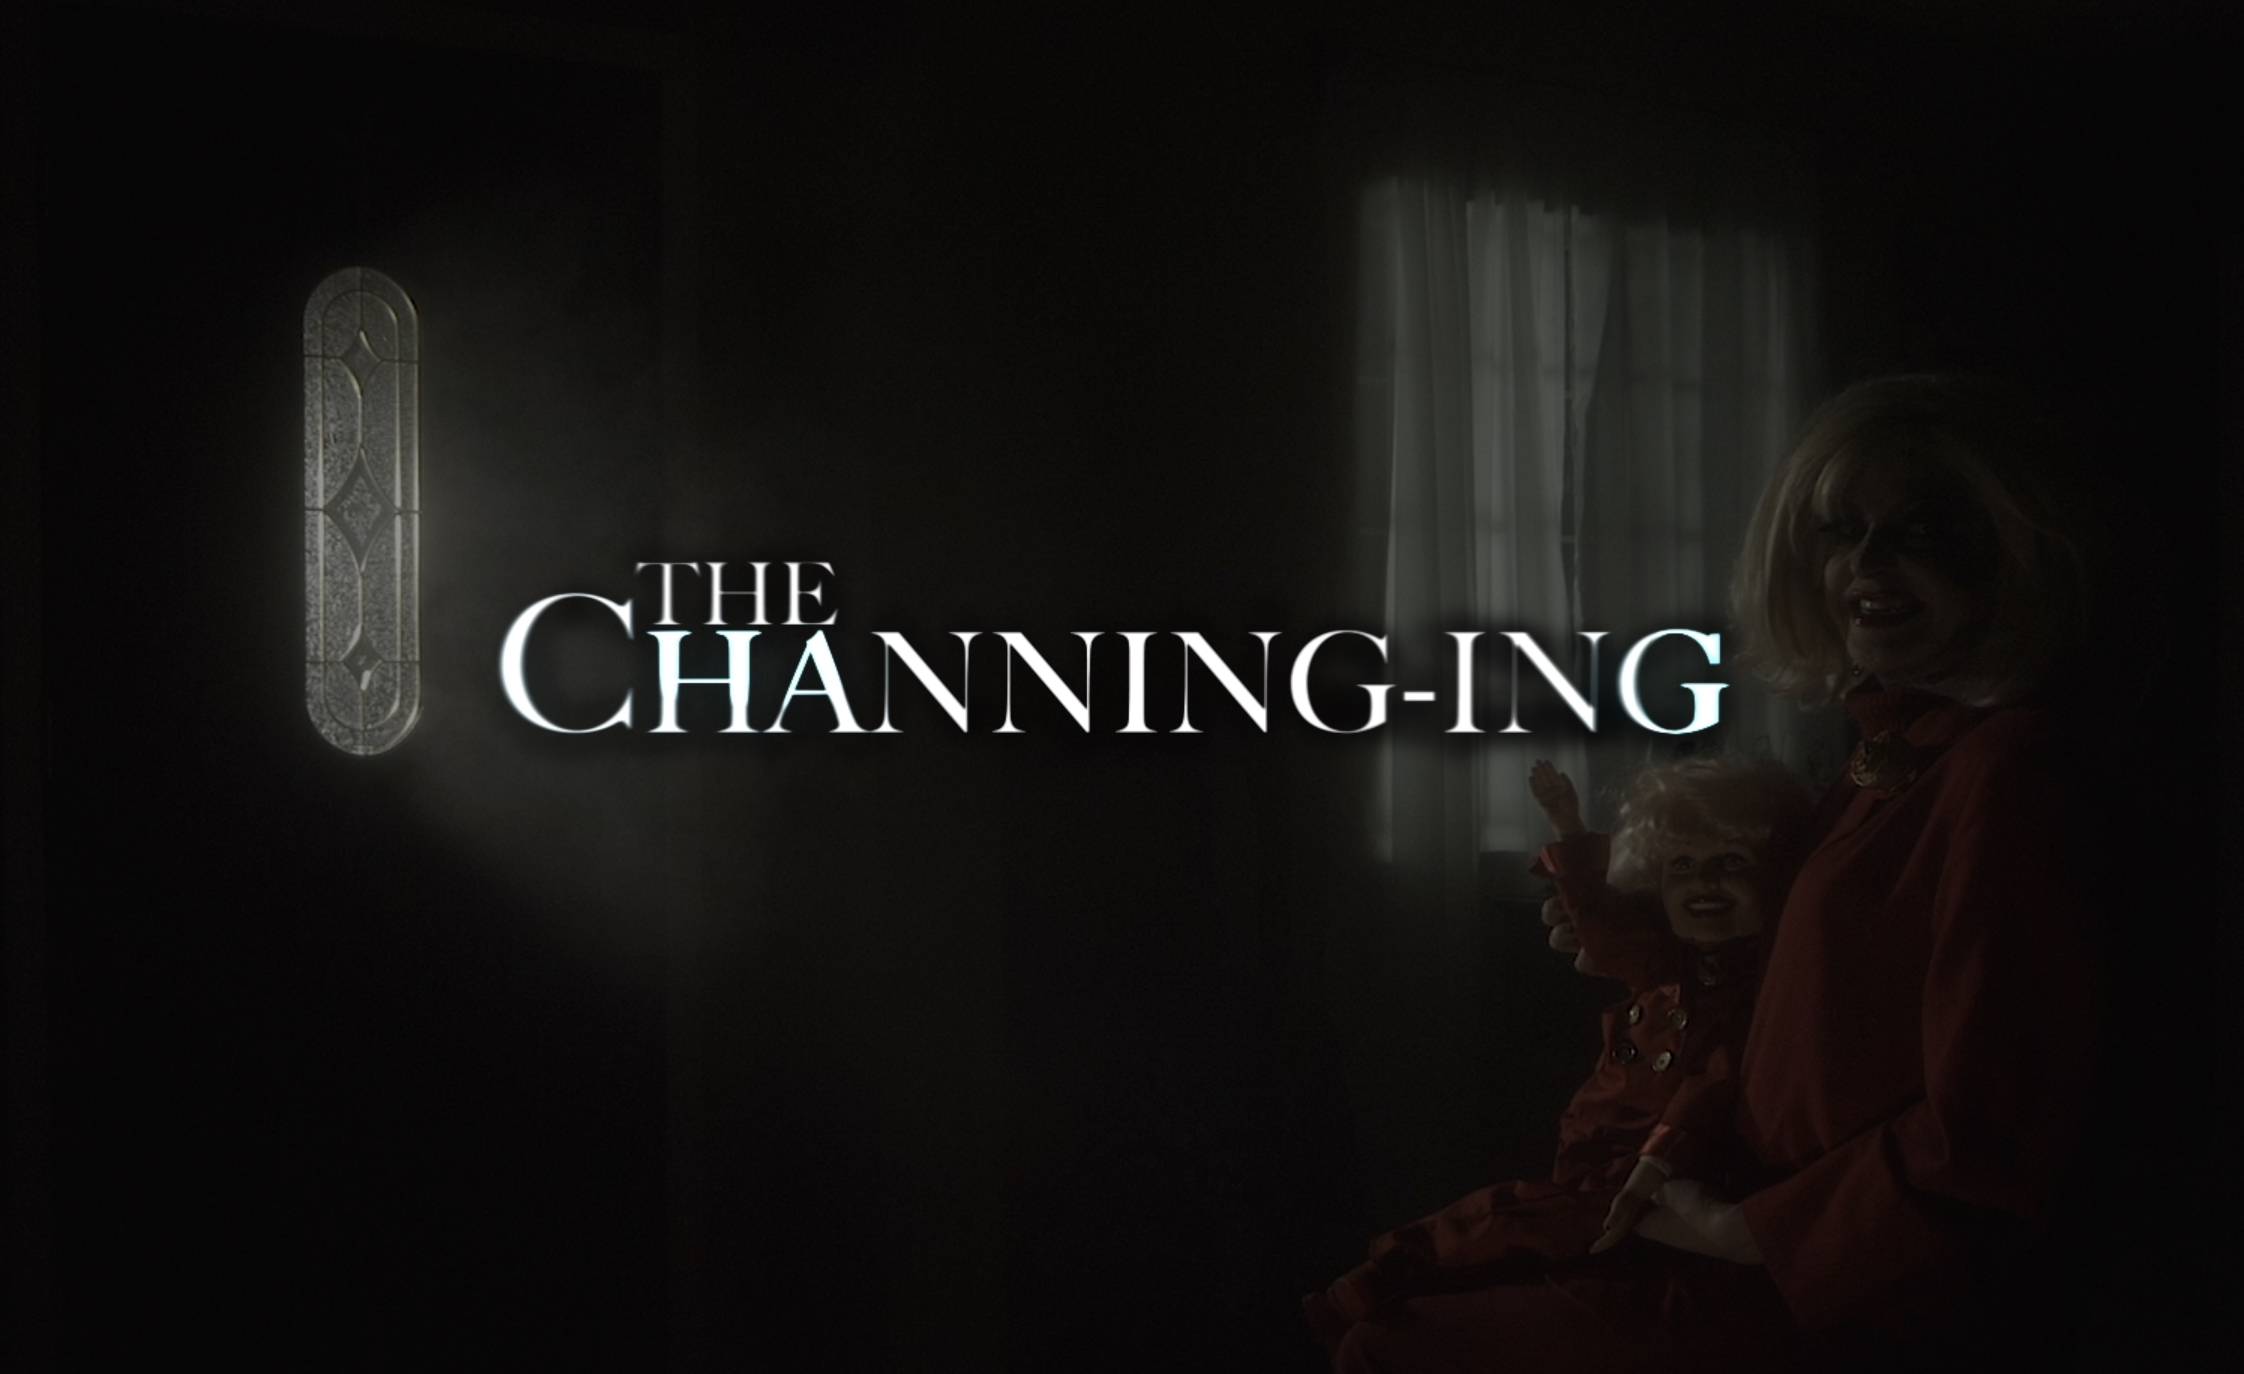 The Channing-ing